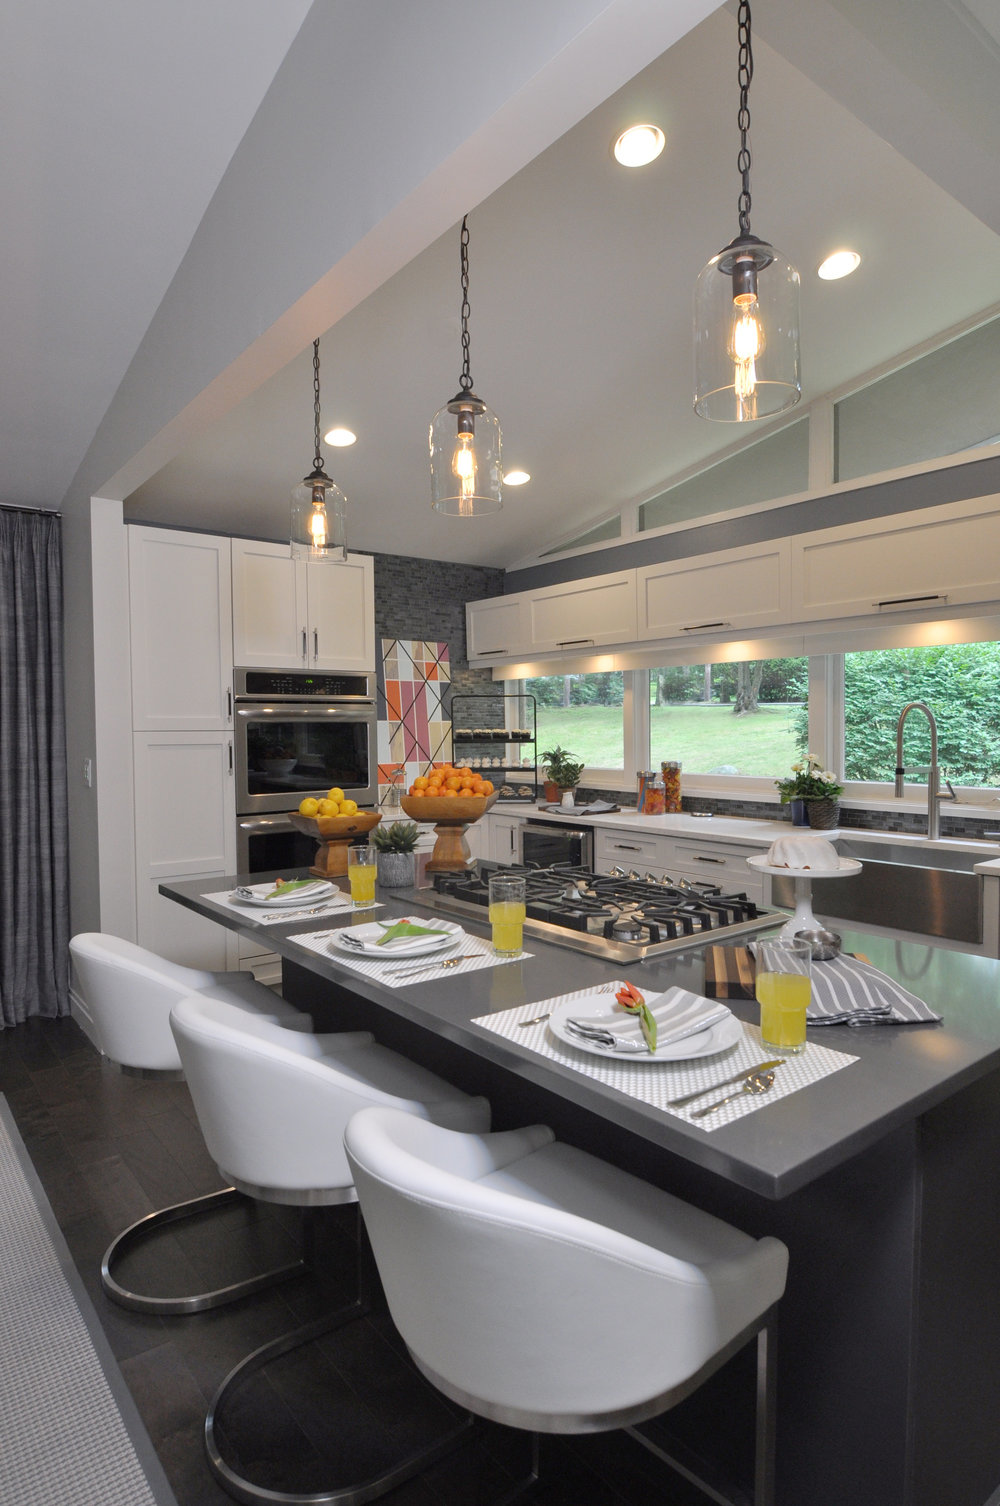 Kim A Mitchell_Design Lead_HGTV_The Property Brothers_Season6_Episode 9_Kitchen_Modern Kitchen_Blue Glass Mosaic Backsplash_Gray Pentel Quartz Island_Pental Quartz Countertop_White Cabinetry_2017.jpg